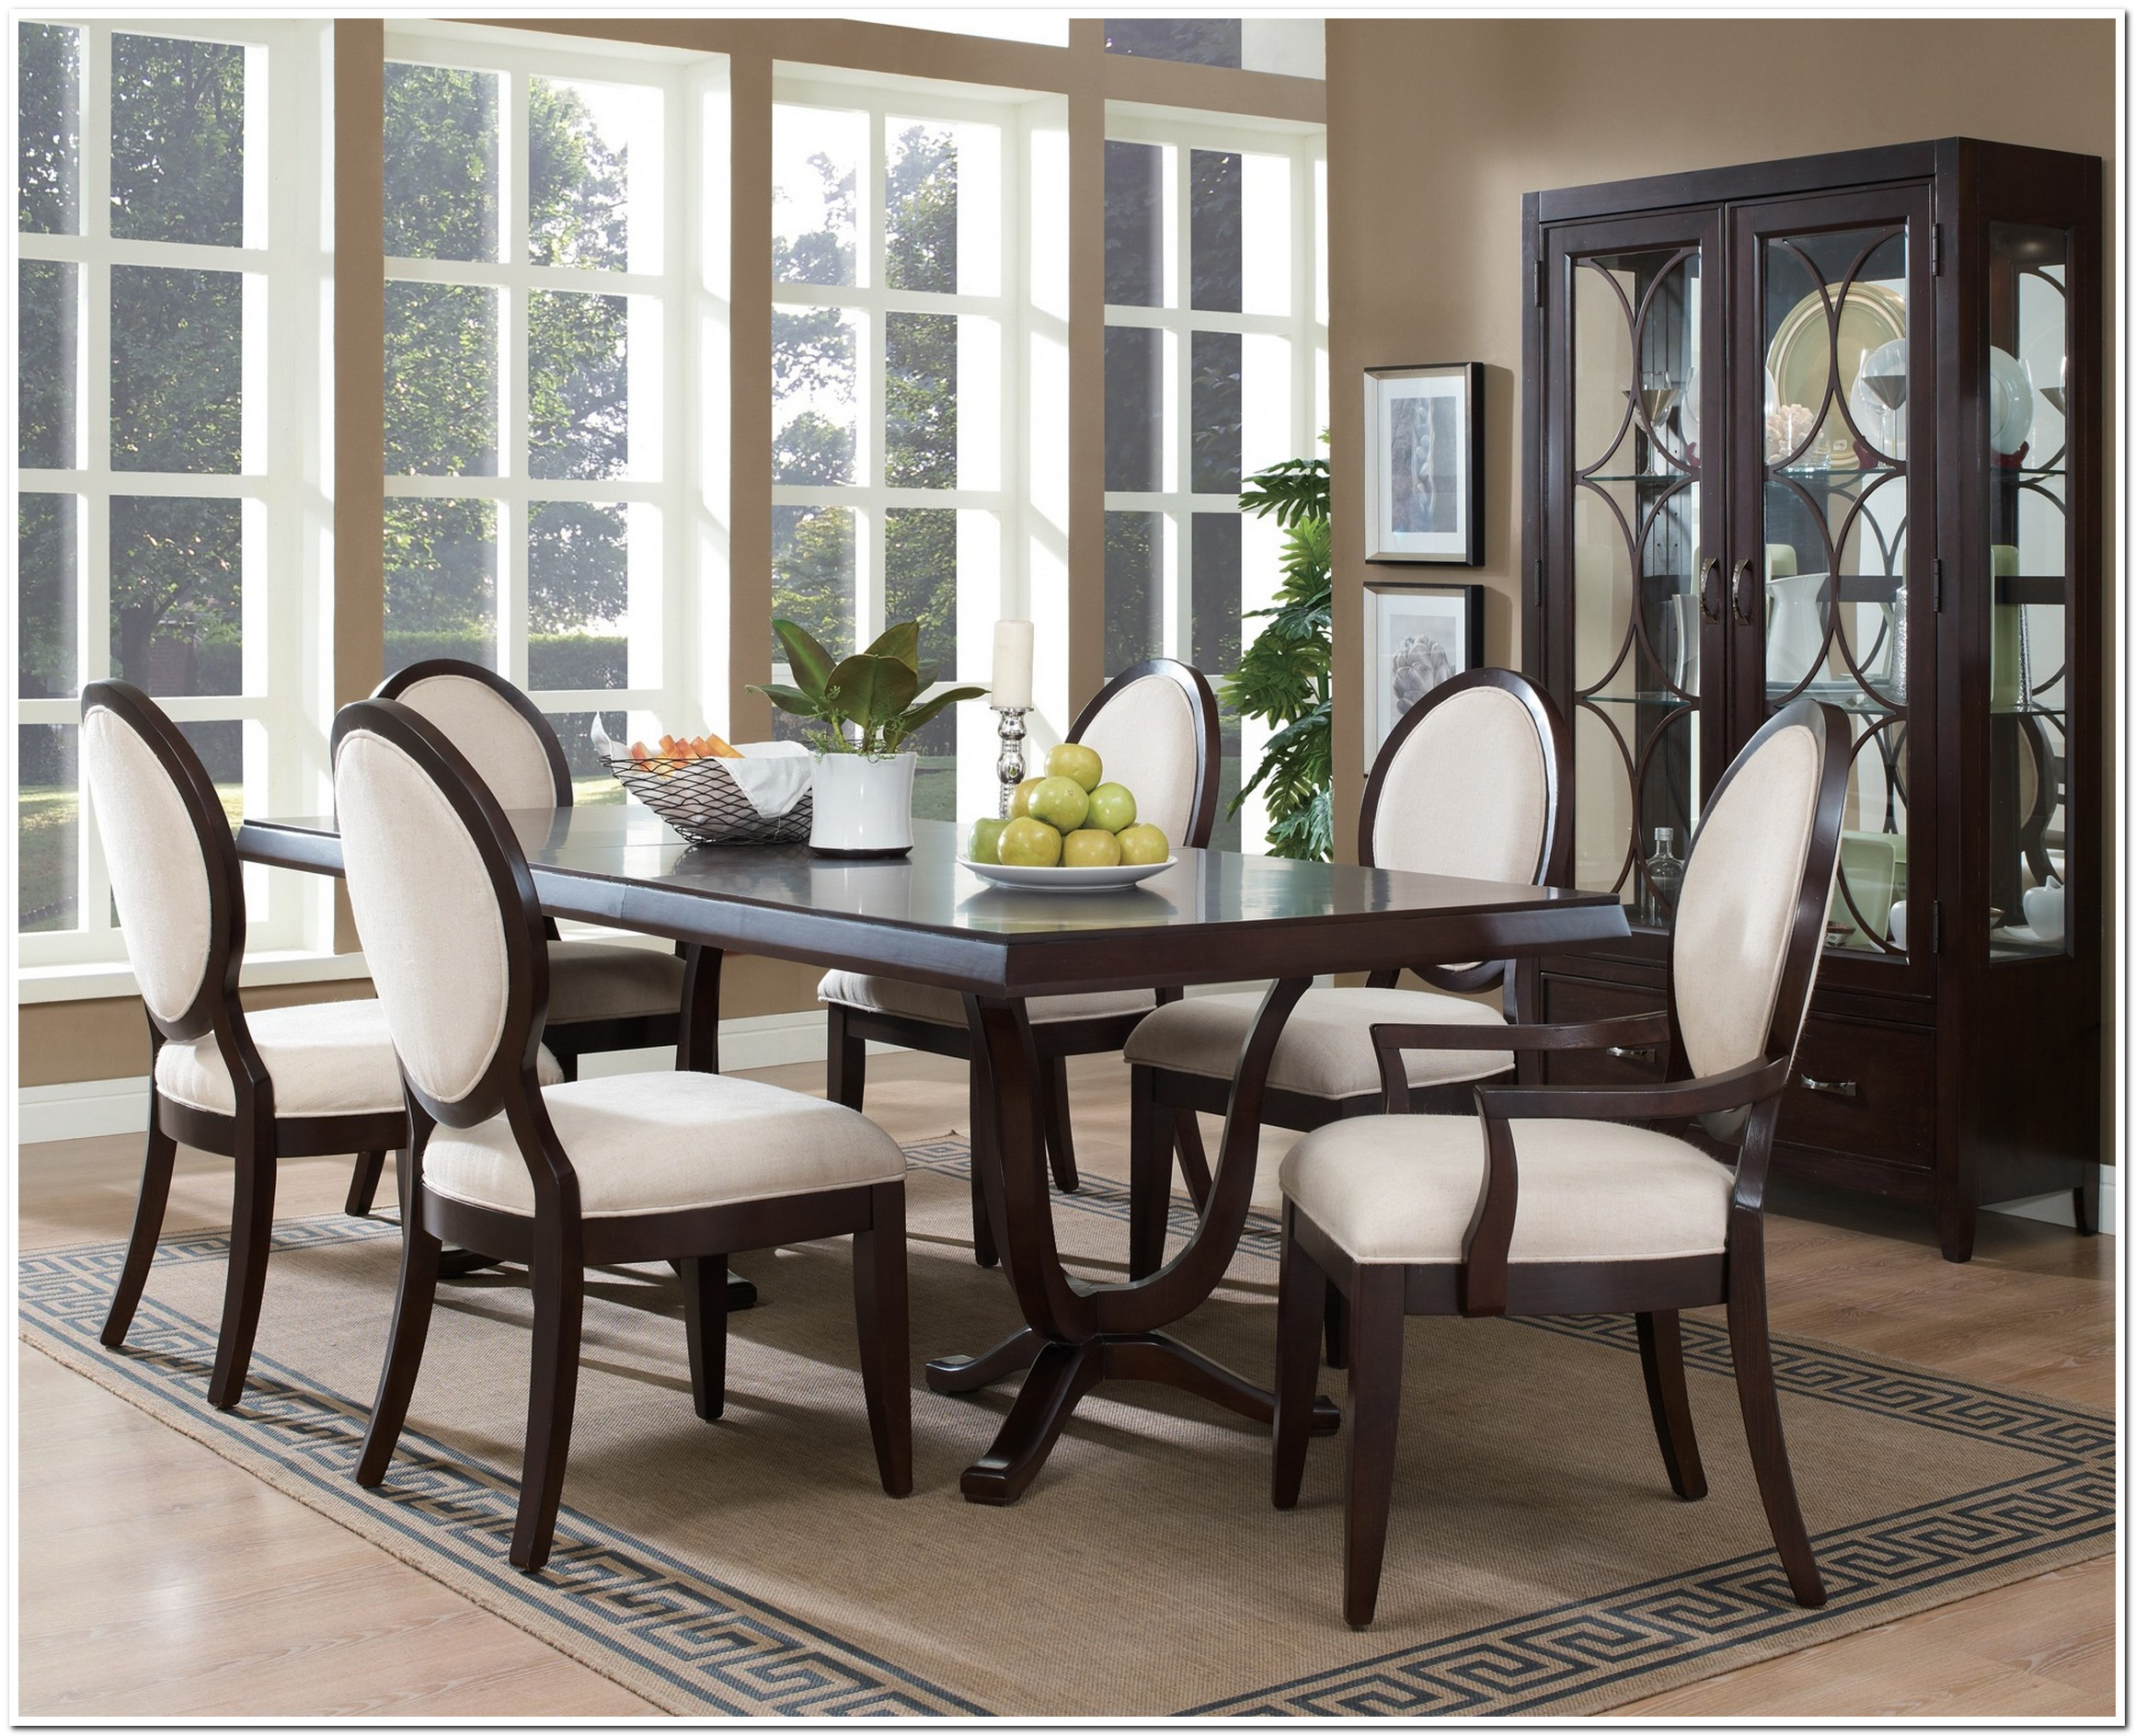 modern furniture dining room | Know What Dining Room Furniture Sets You Want To Bring Out ...